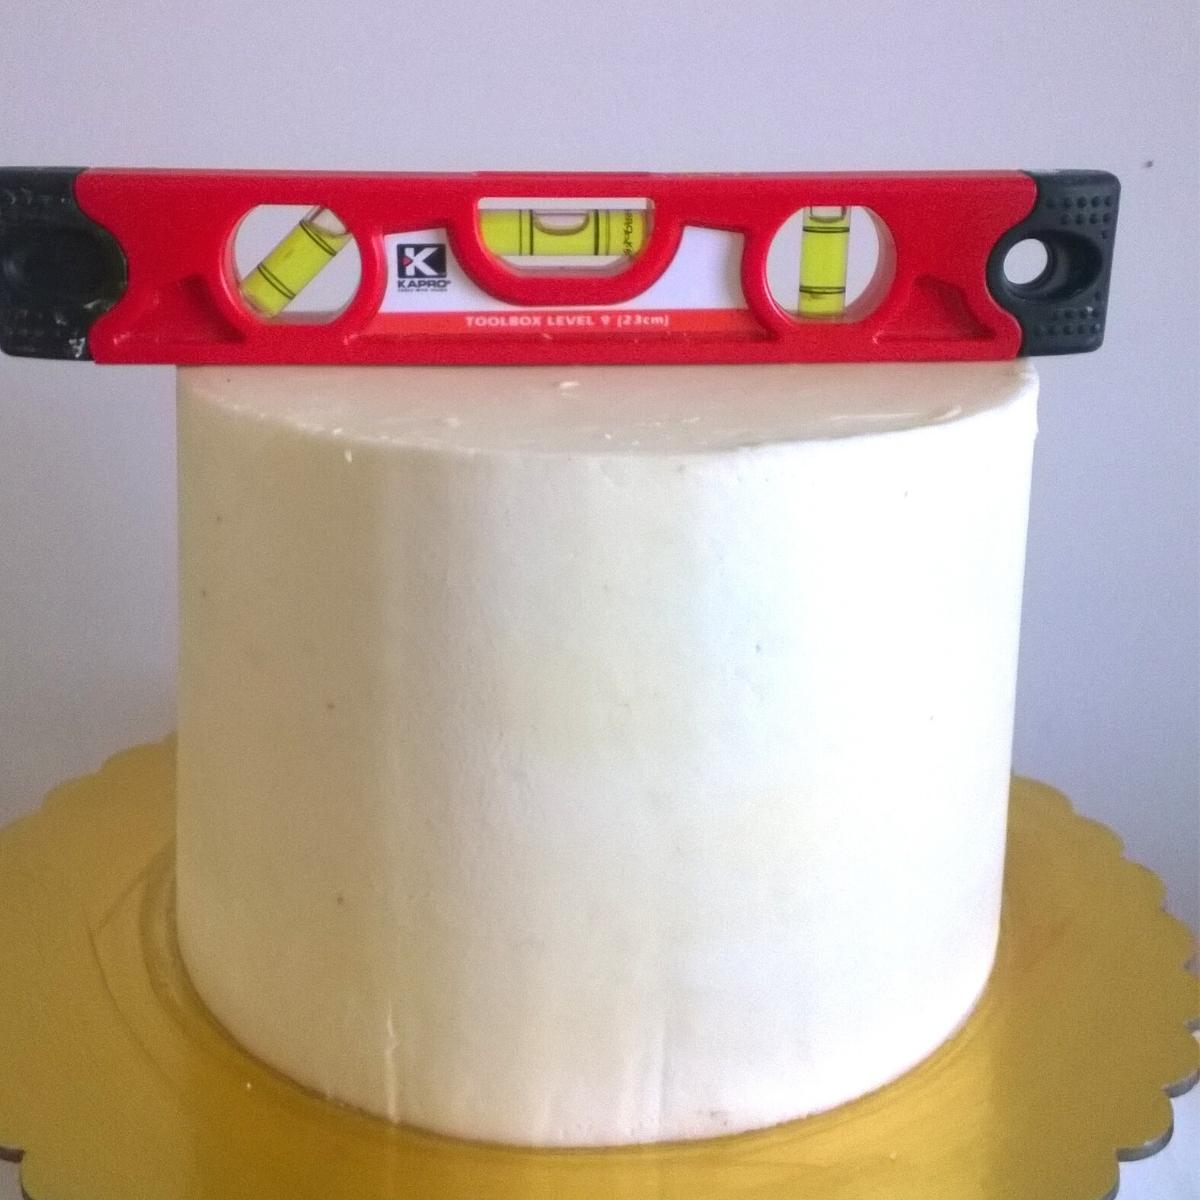 A buttercream frosted cake with a cake leveler.